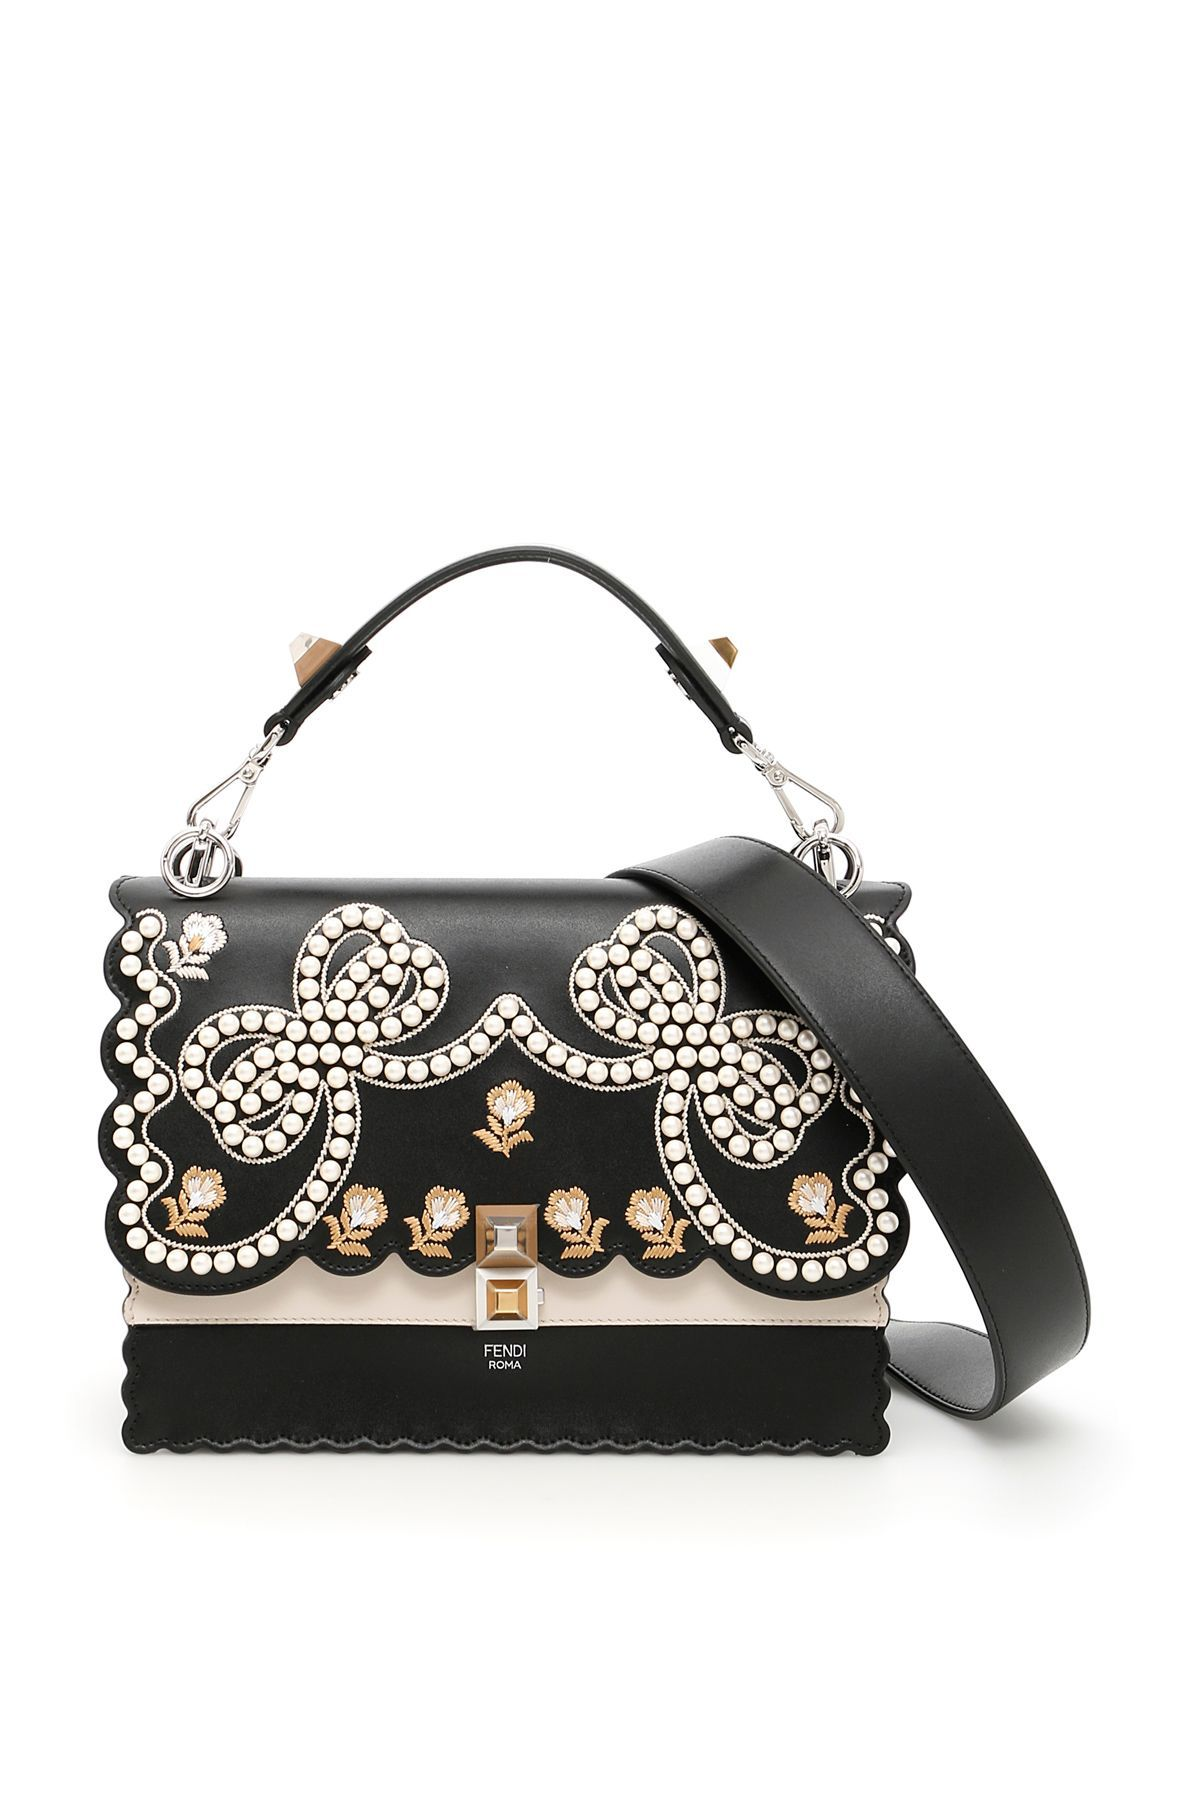 9ed0041e5a Fendi leather KAN I bag with scalloped hems and bicolor front. The flap  features embroidered flowers and pearls creating two bows. Two bicolor  plexi pyramid ...